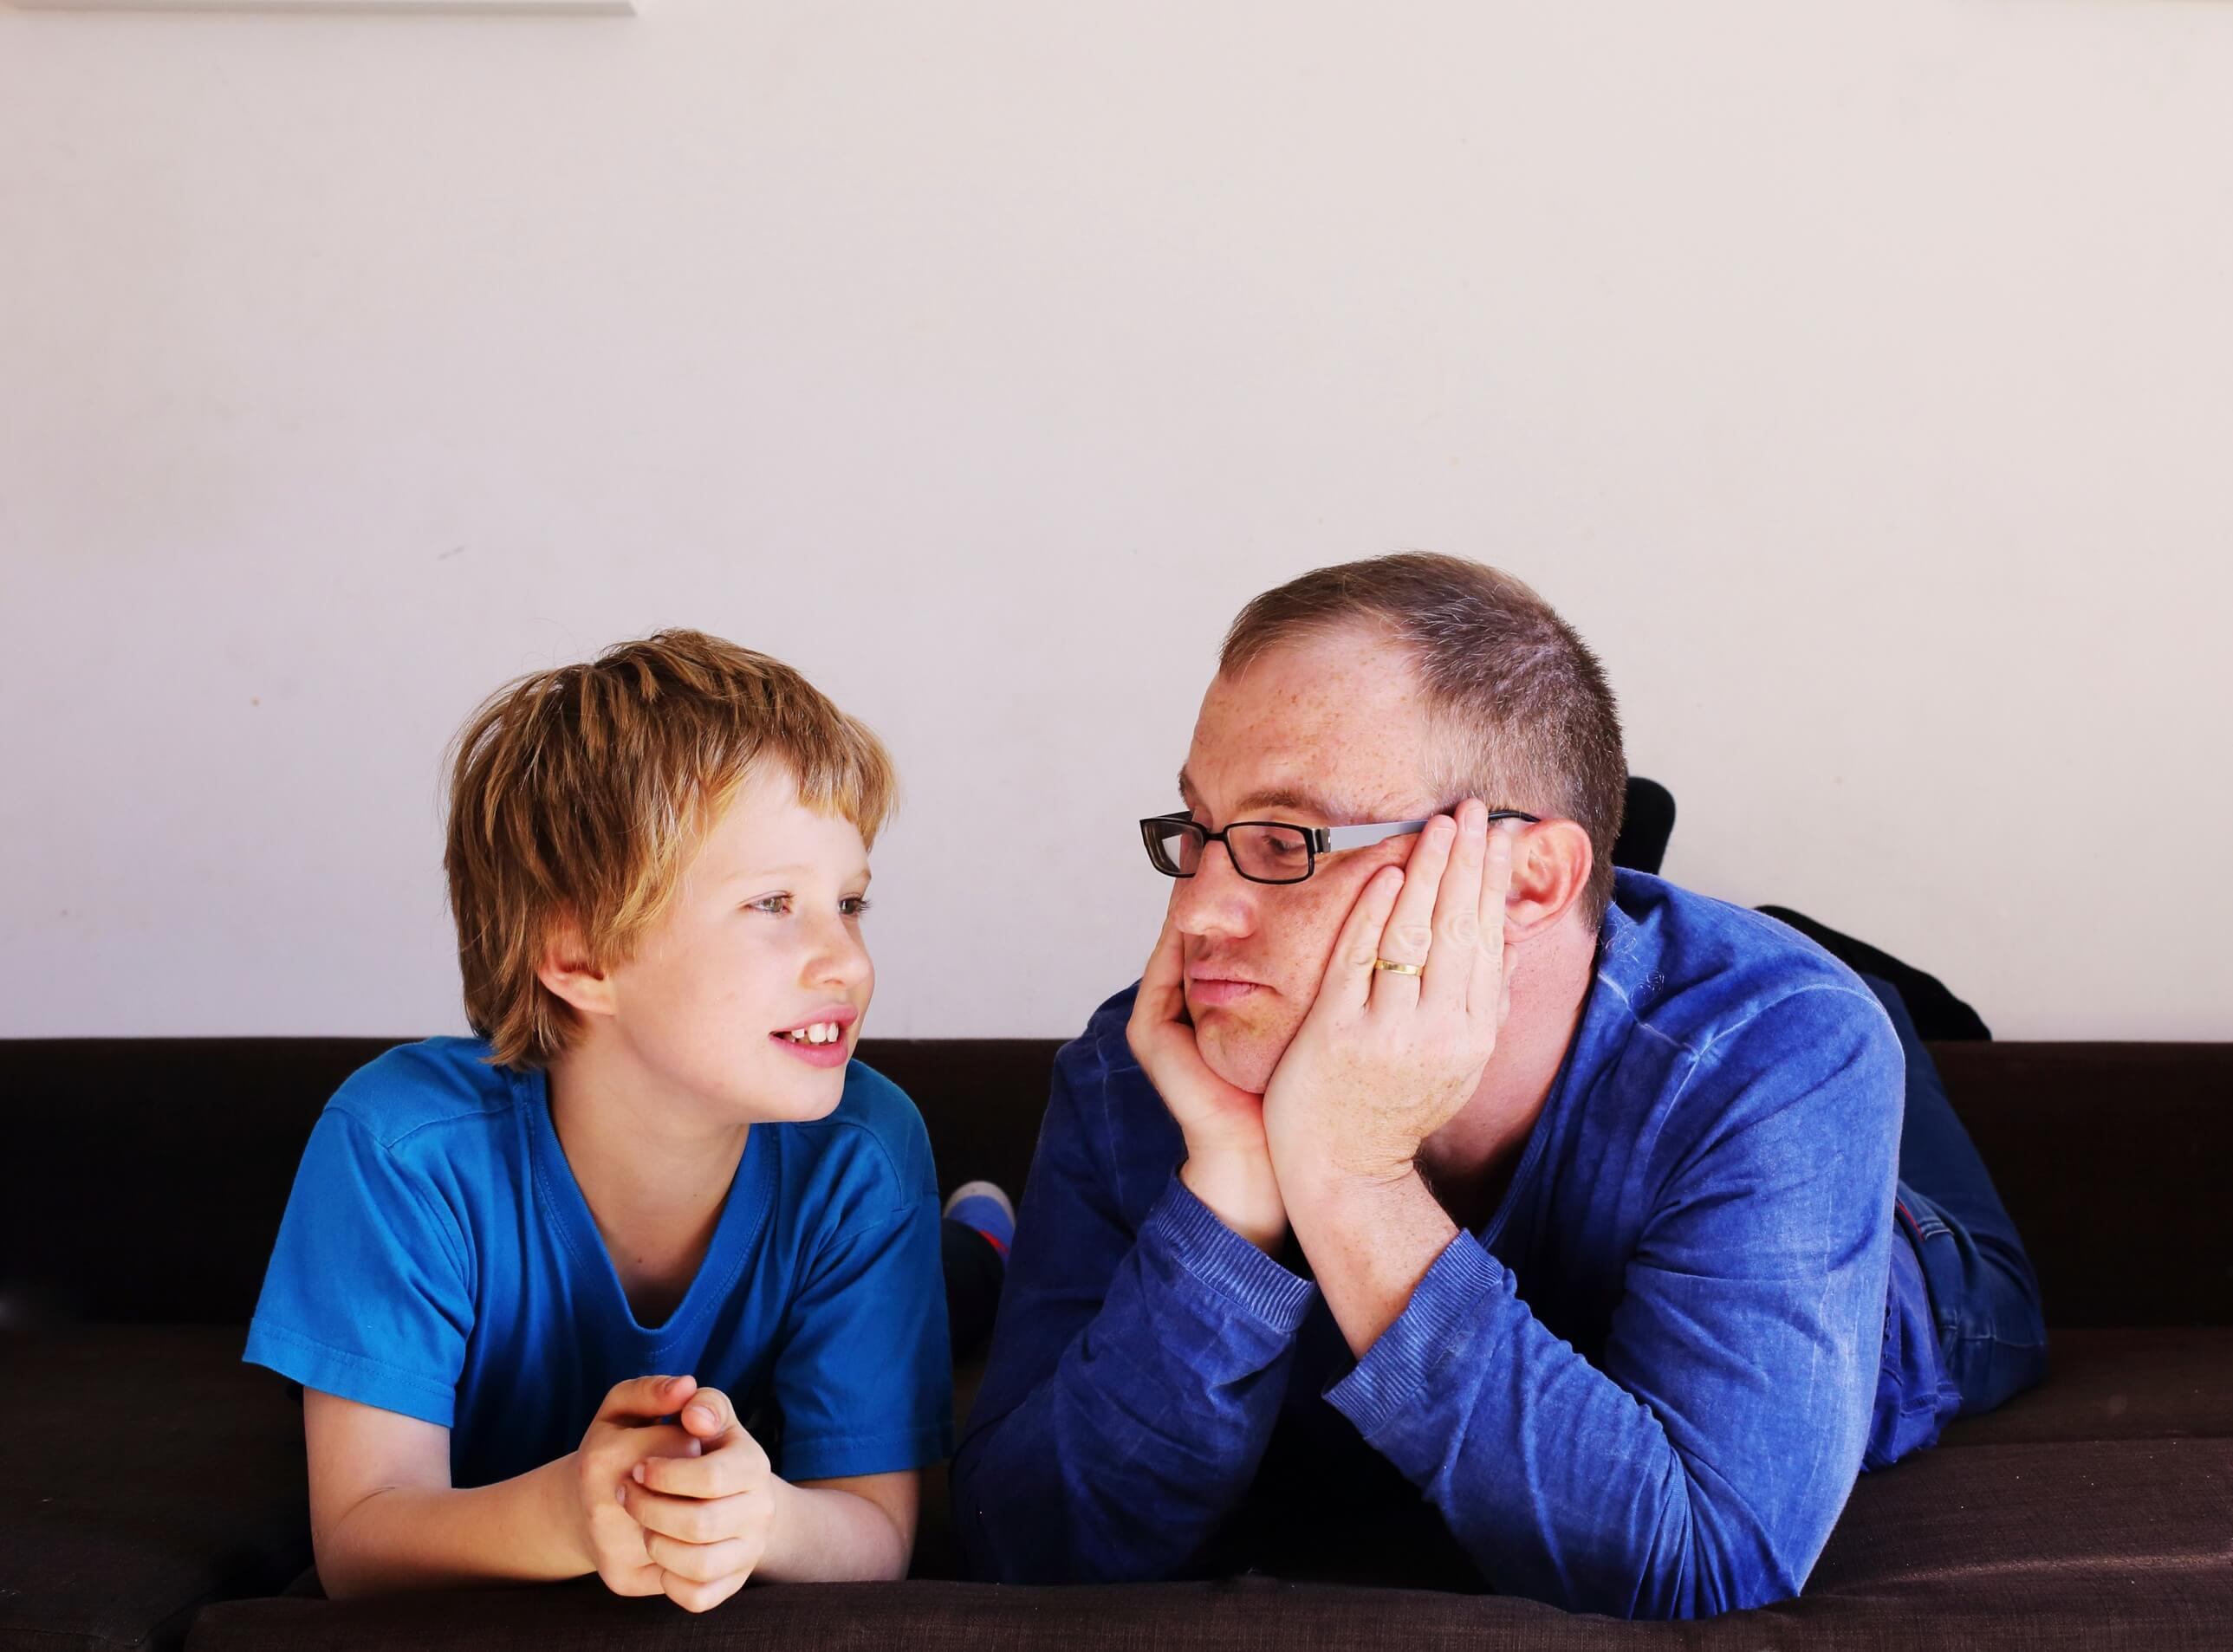 autism father son discussion